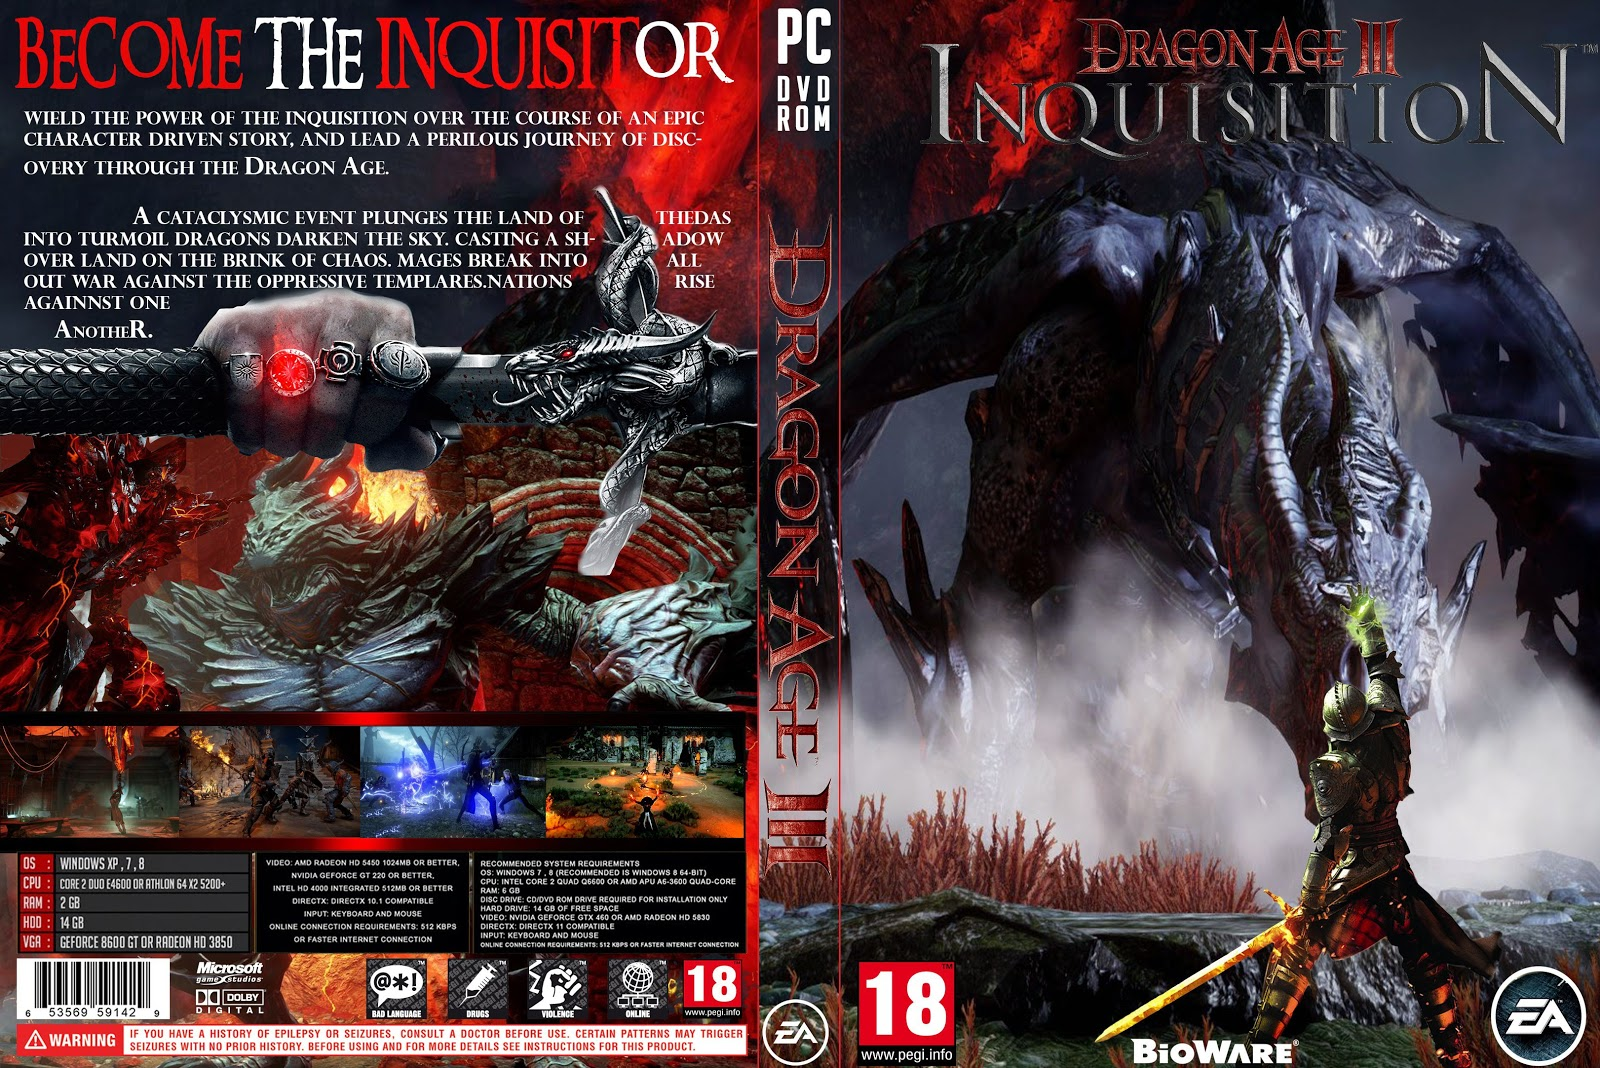 Capa Dragon Age III Inquisition PC